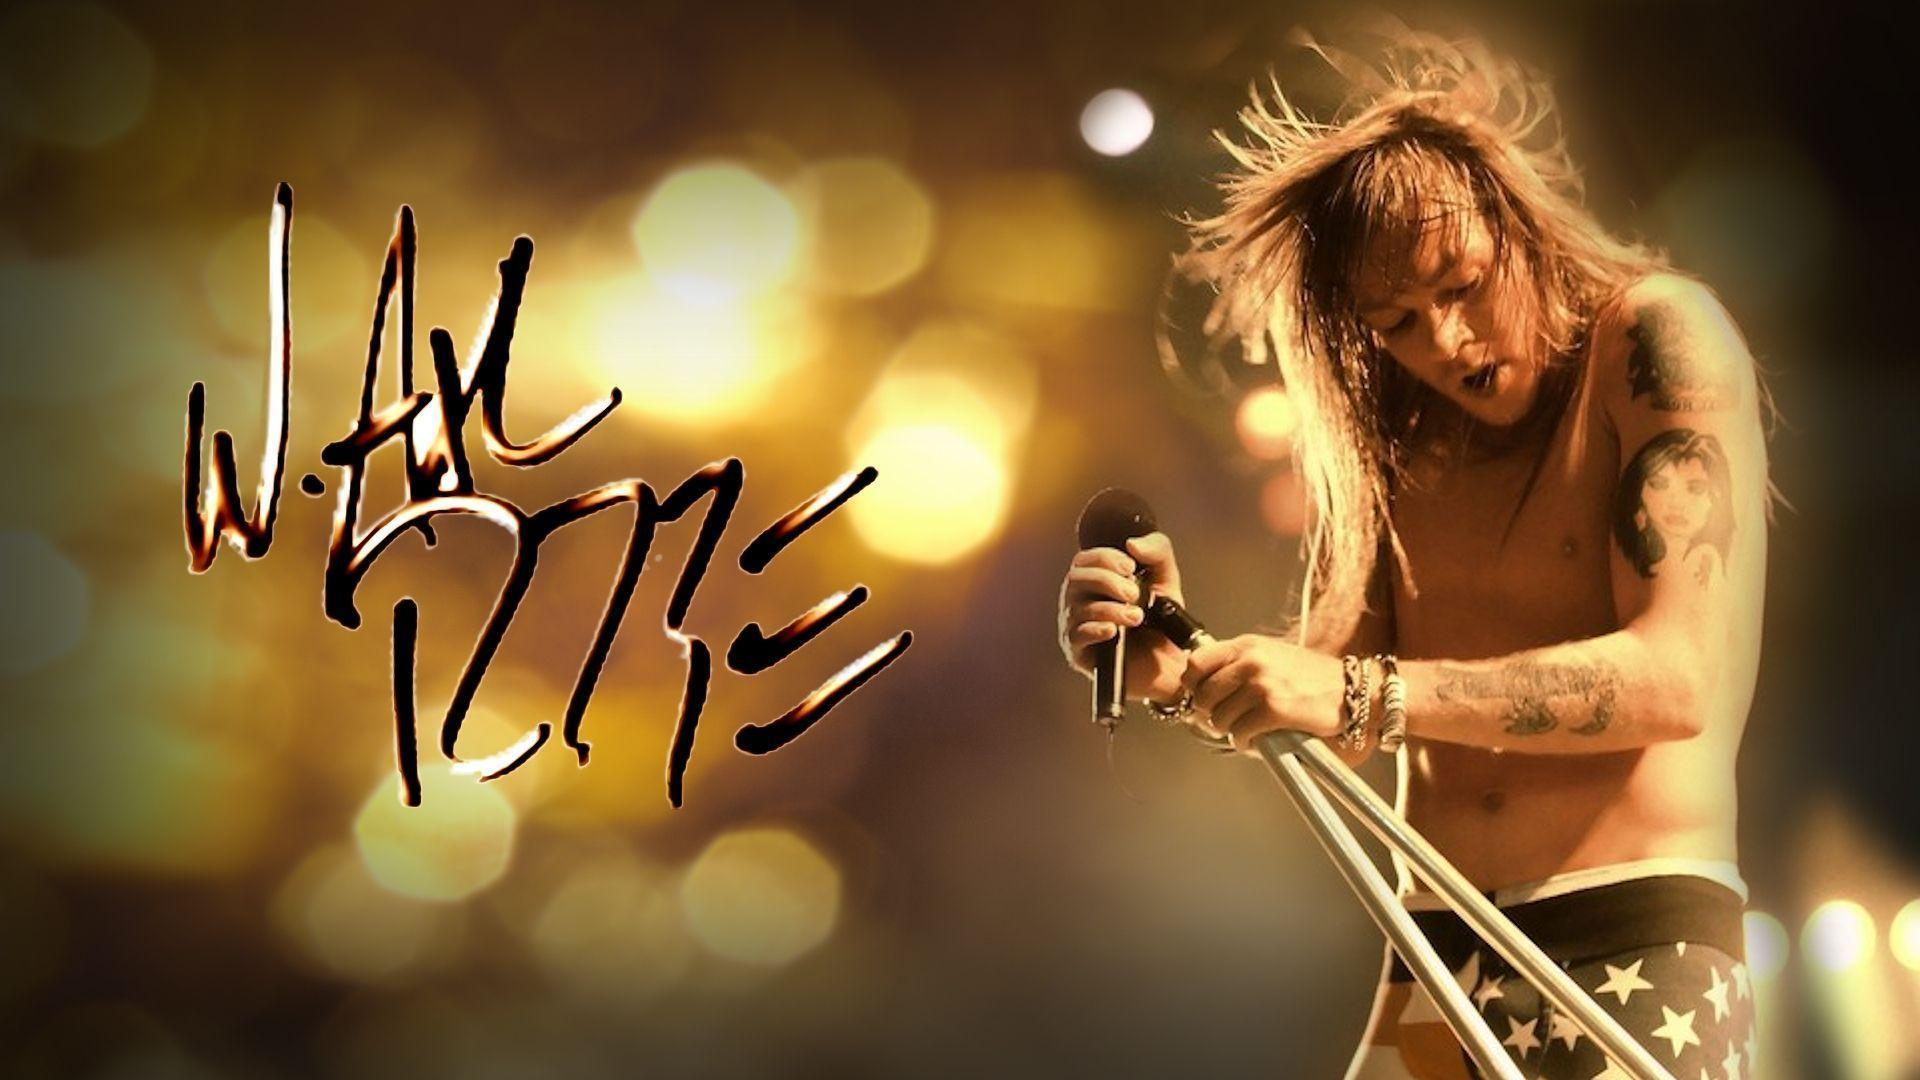 Axl Rose wallpapers